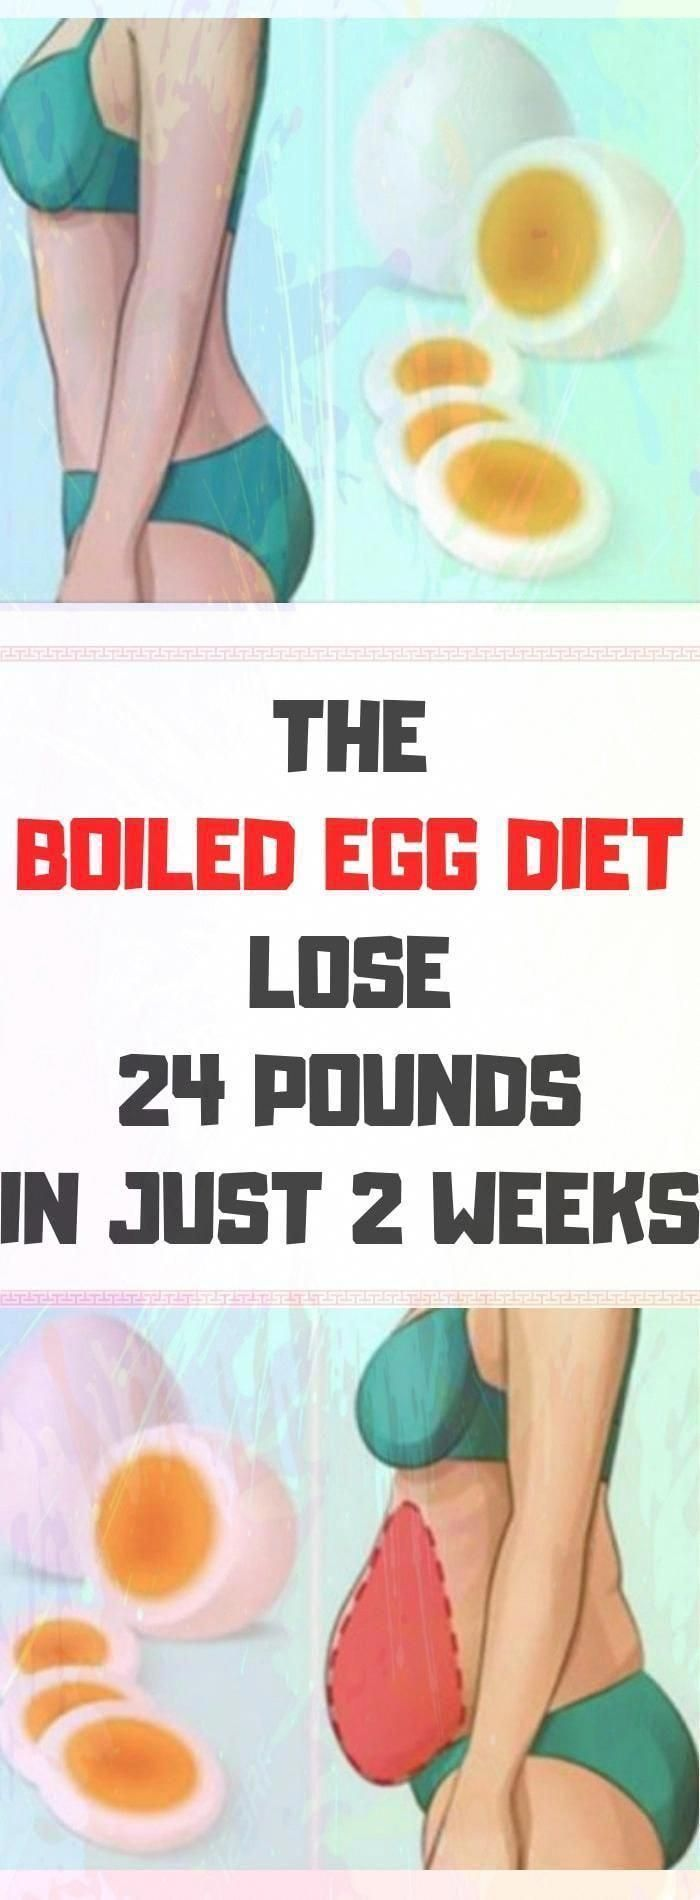 The Boiled Egg Diet � Lose 24 Pounds In Just 2 Weeks � Lifee Too#health #fitness #healthandfitness  #boiledegg #boiledeggnutrition The Boiled Egg Diet � Lose 24 Pounds In Just 2 Weeks � Lifee Too#health #fitness #healthandfitness  #boiledegg #boiledeggnutrition The Boiled Egg Diet � Lose 24 Pounds In Just 2 Weeks � Lifee Too#health #fitness #healthandfitness  #boiledegg #boiledeggnutrition The Boiled Egg Diet � Lose 24 Pounds In Just 2 Weeks � Lifee Too#health #fitness #healthand #boiledeggnutrition